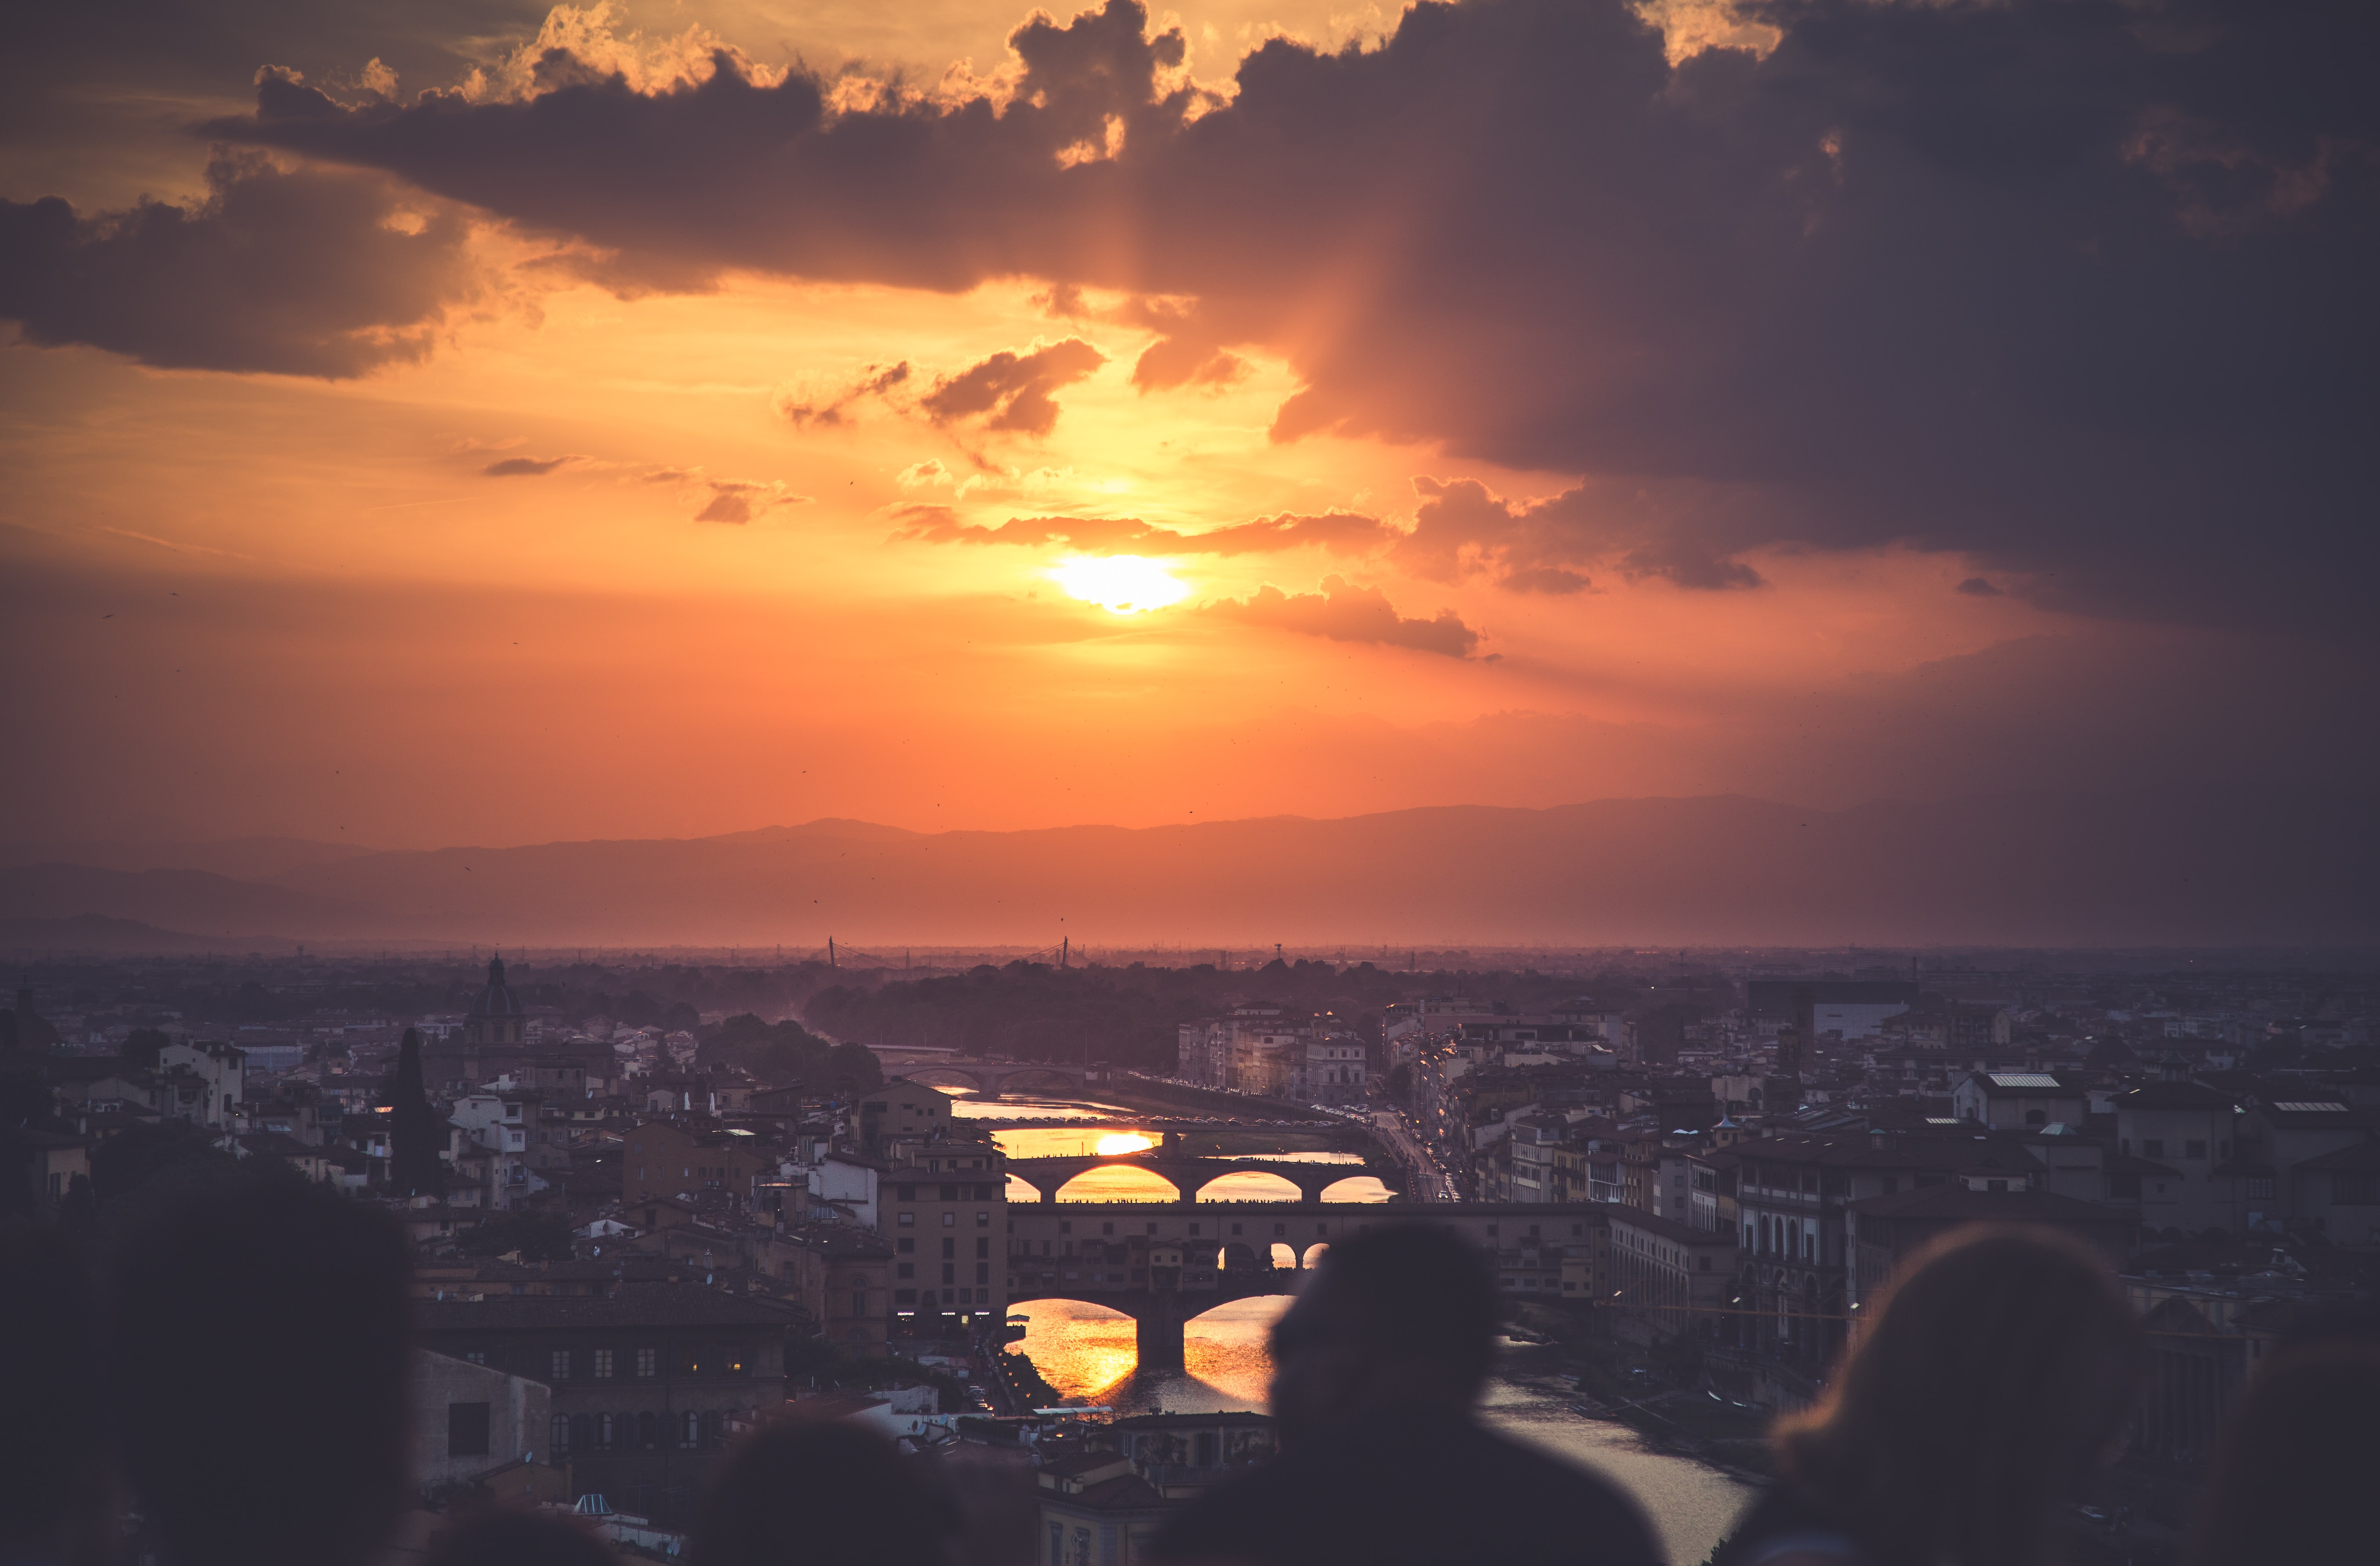 The sun setting over the bridges and the Arno River of Florence, Italy, looking out from Piazzale Michelangelo